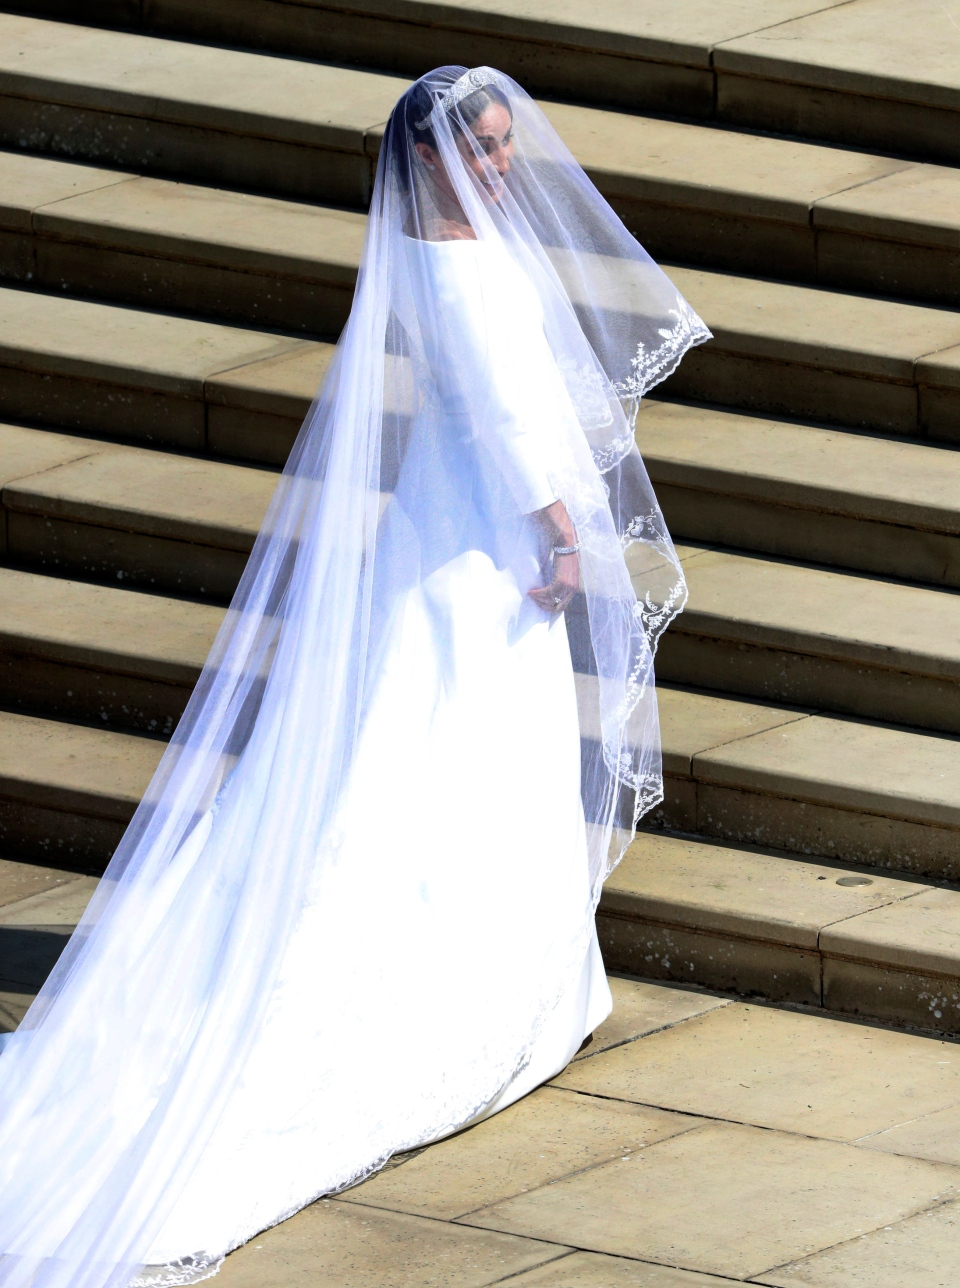 Meghan Markle arrives for the wedding ceremony of Prince Harry and Meghan Markle at St. George's Chapel in Windsor Castle in Windsor, near London, England, Saturday, May 19, 2018. (Andrew Matthews/pool photo via AP)